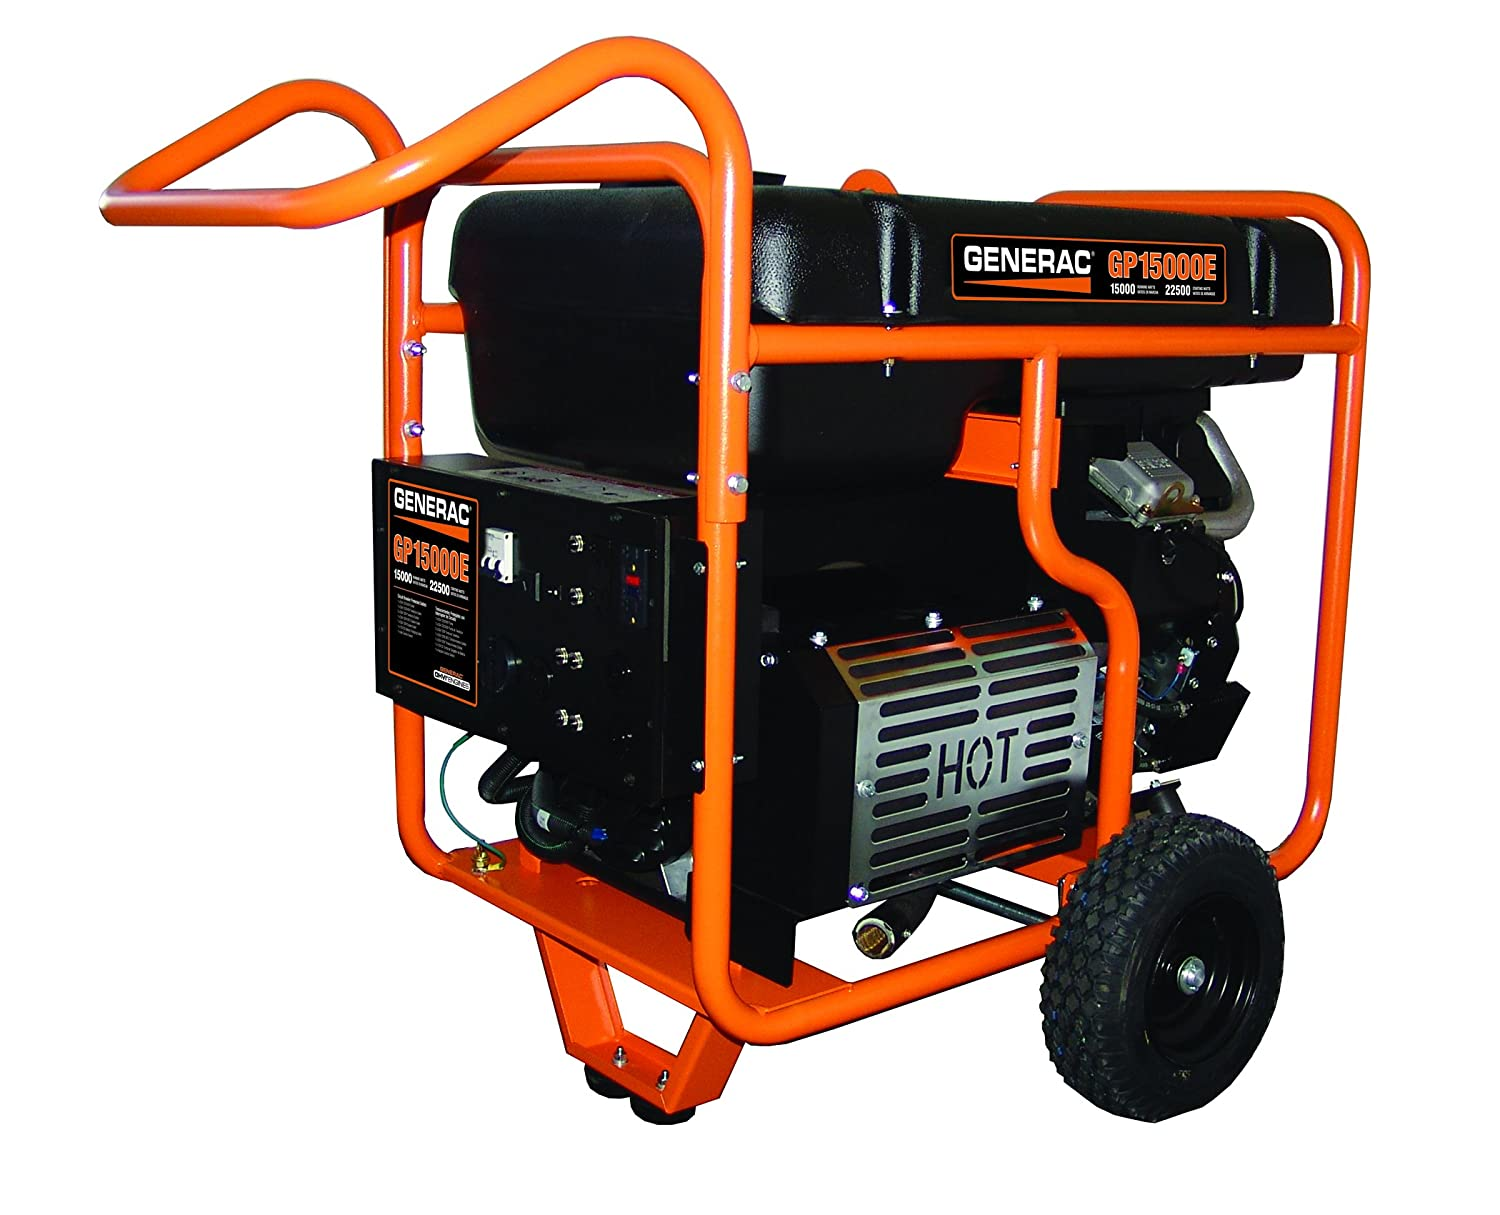 Amazon.com : Generac 5734 GP15000E 15000 Running Watts/22500 Starting Watts  Electric Start Gas Powered Portable Generator : Garden & Outdoor